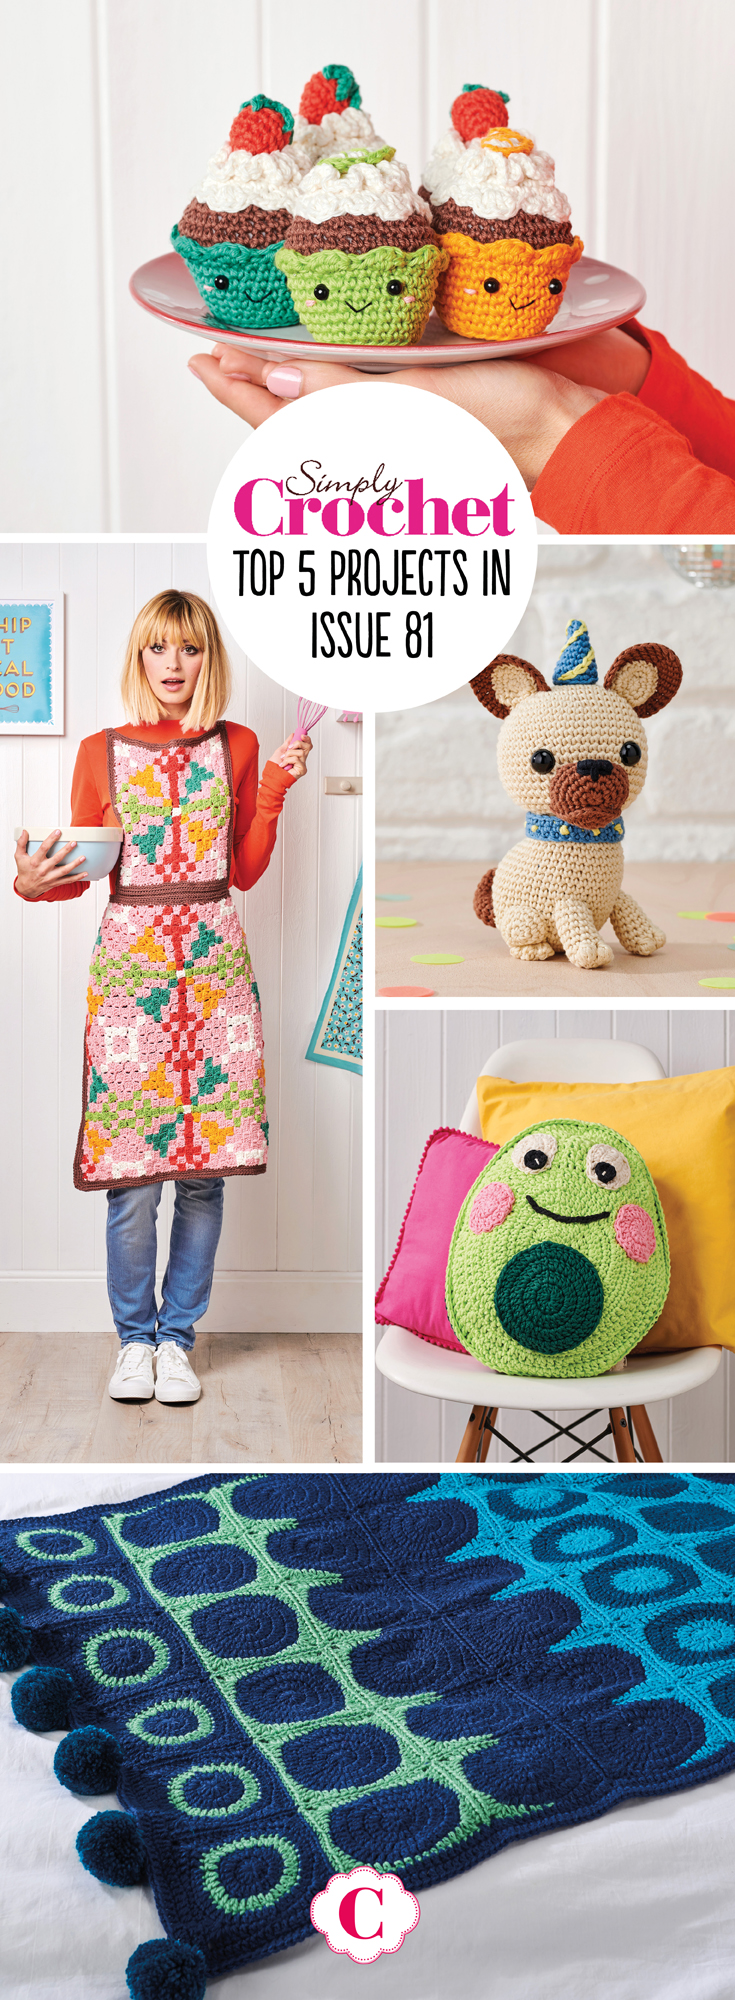 It's a hug in a mag this issue, with the best of the cosy and cute snuggled up inside. Get your yarn party started with our fun-loving amigurumi pug, surround yourself with friendly cakey faces, then crash out after-hours on our characterful avocado cushion. We're riding the retro vibe this issue with fun baking-themed makes. From apron to oven mitt, it's a timeless collection. You're sorted for Mother's Day gifts too, from a speedy hat to a star-bobble jumper and a soft cowl.